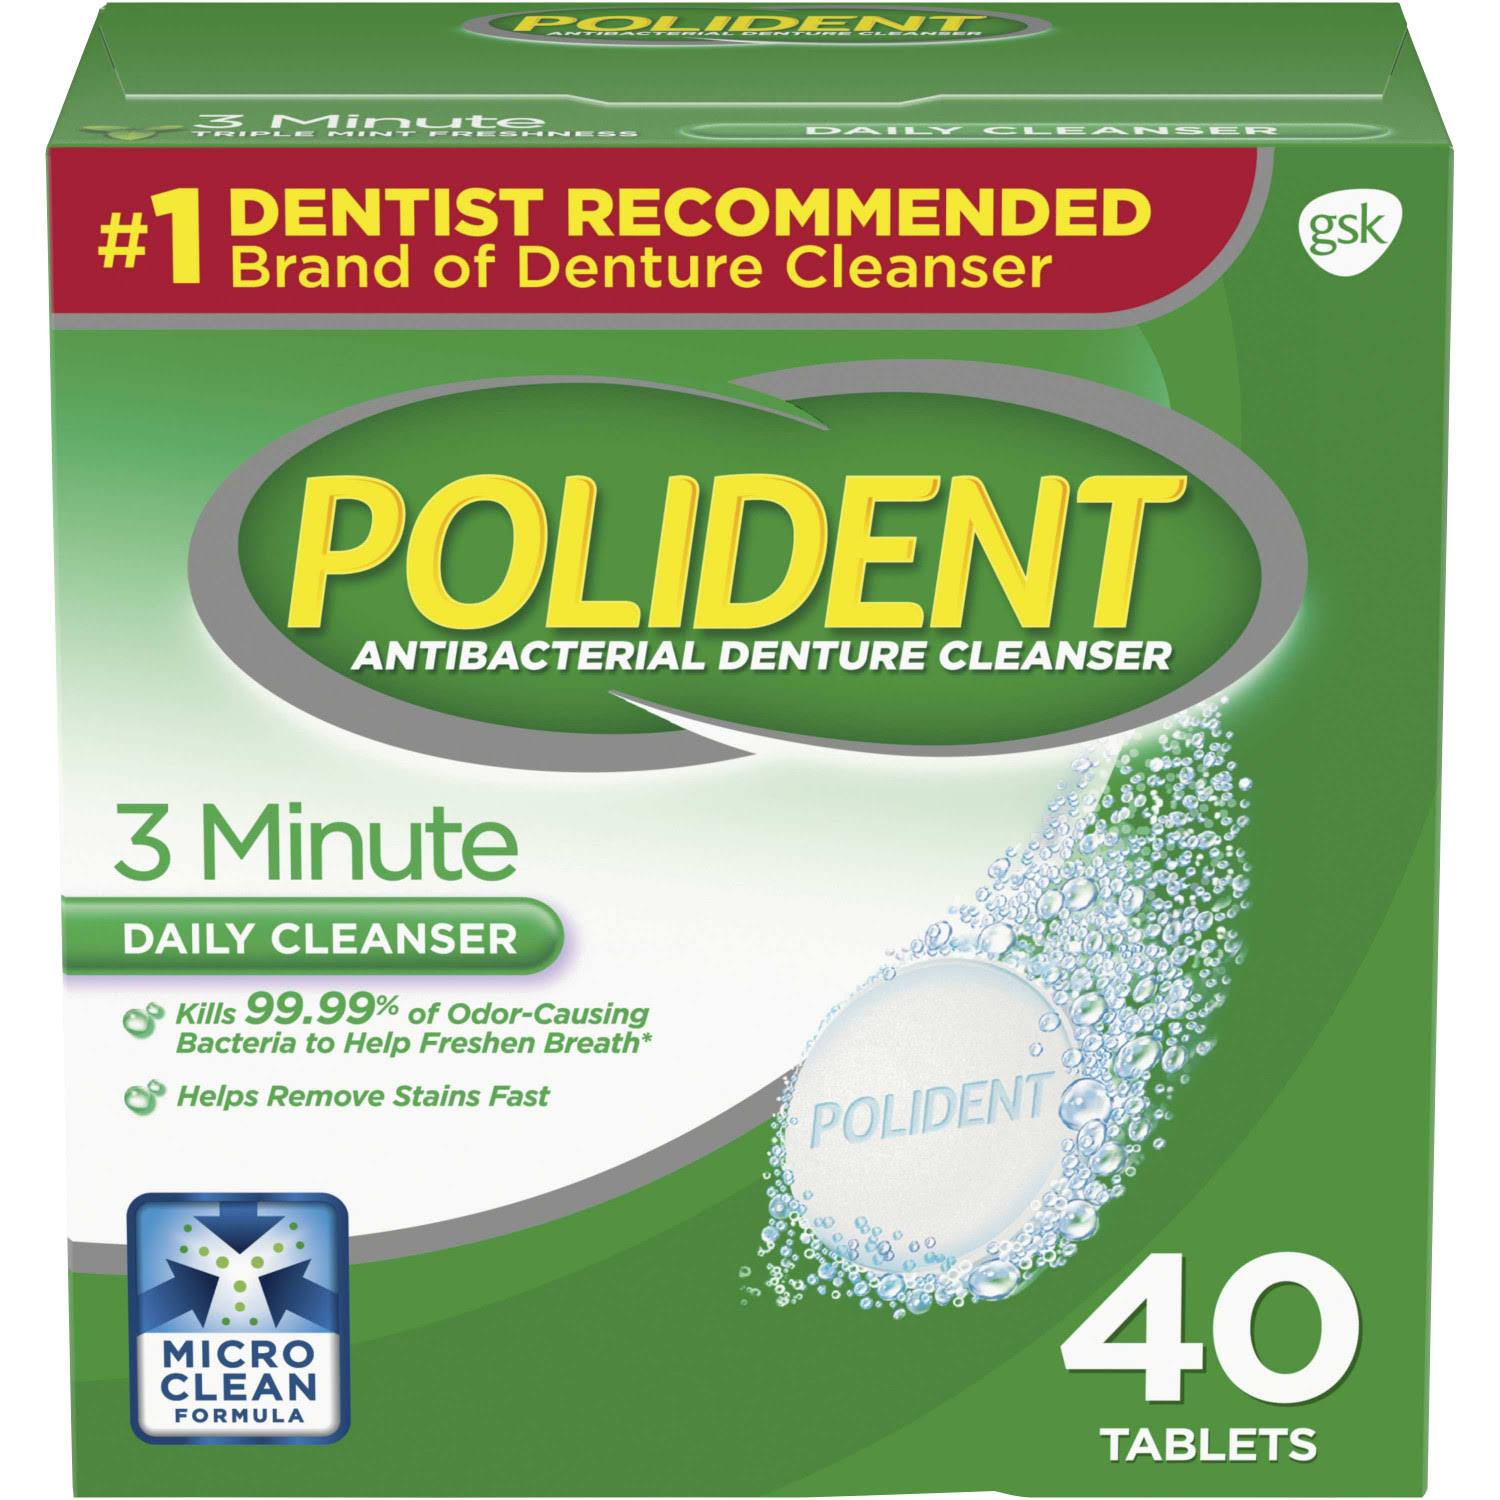 Polident Antibacterial Denture Cleaner - 40 Tablets